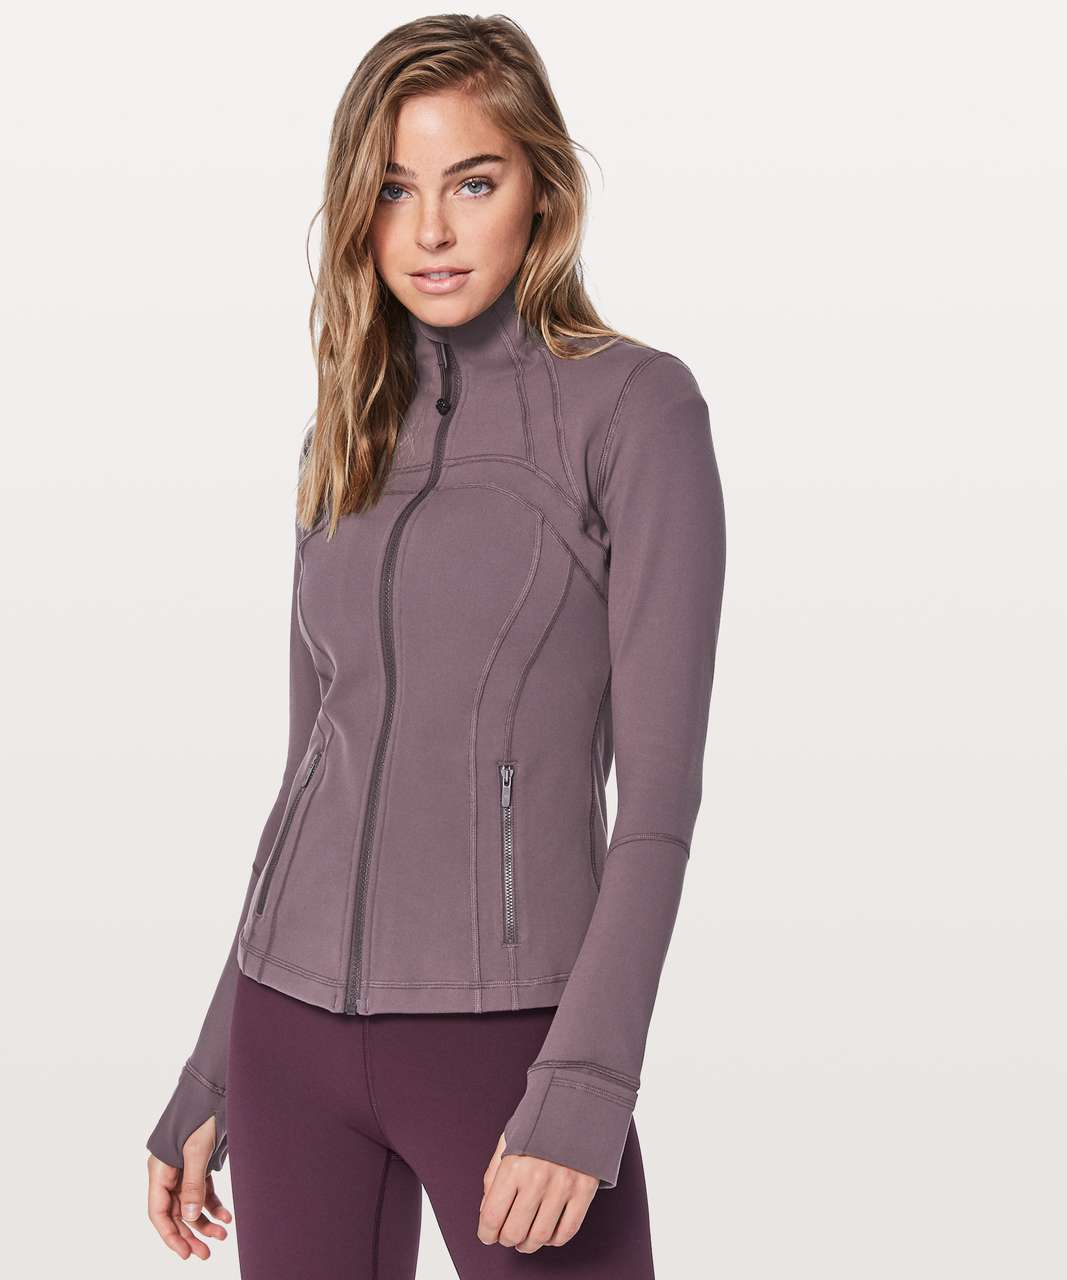 Lululemon Define Jacket - Vintage Grape